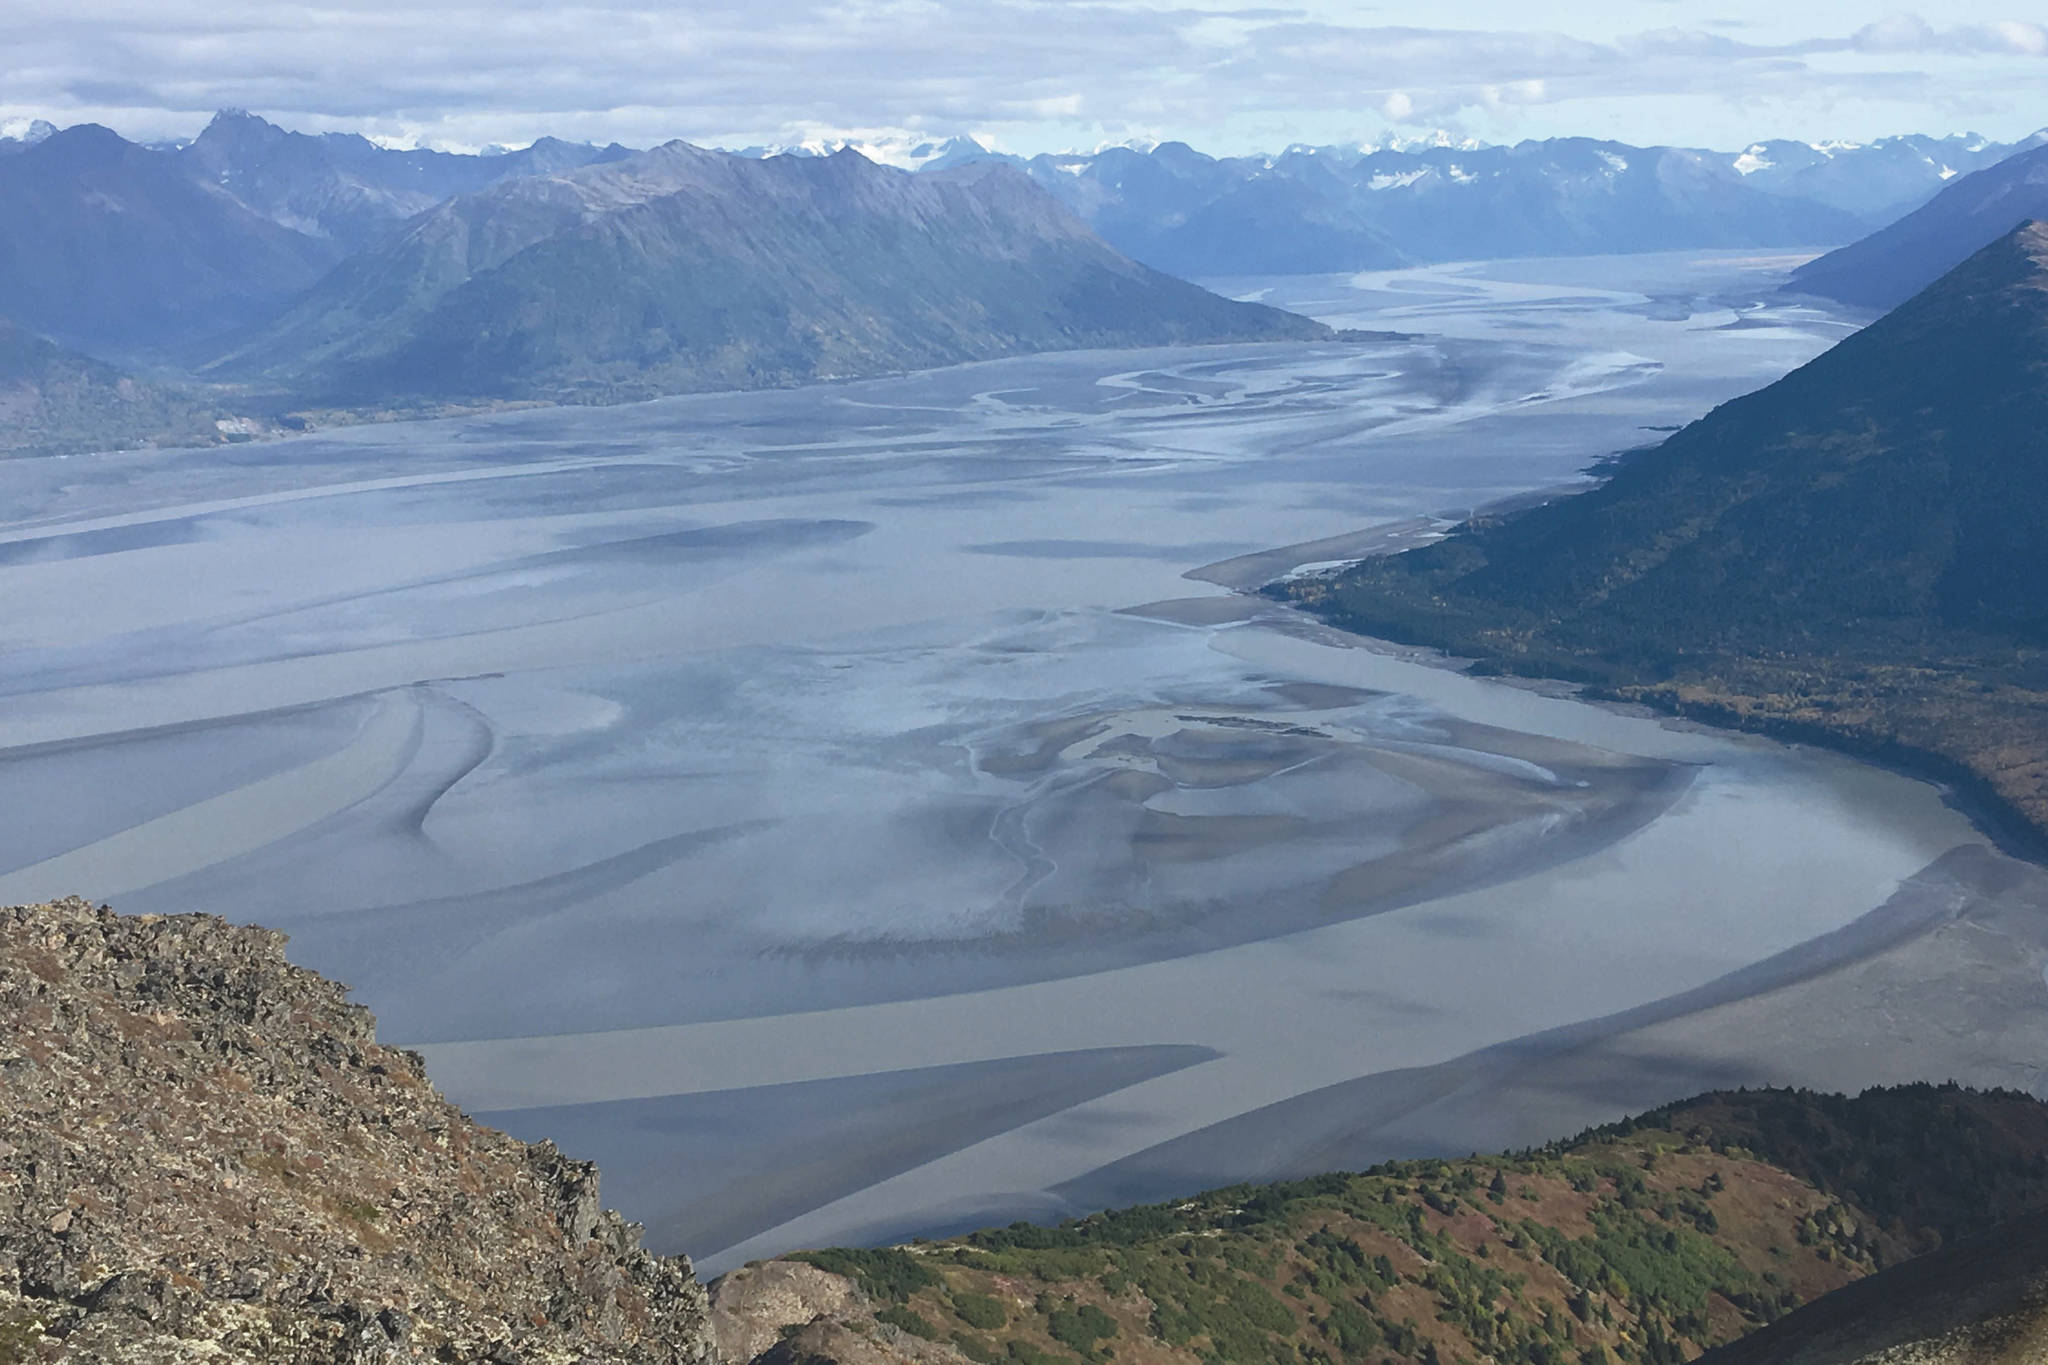 The view of Turnagain Arm, as seen from Hope Point in September 2018. Hope, Alaska, would be a good meeting place for a date once restrictions caused by the new coronavirus are lifted. (Photo by Jeff Helminiak/Peninsula Clarion)